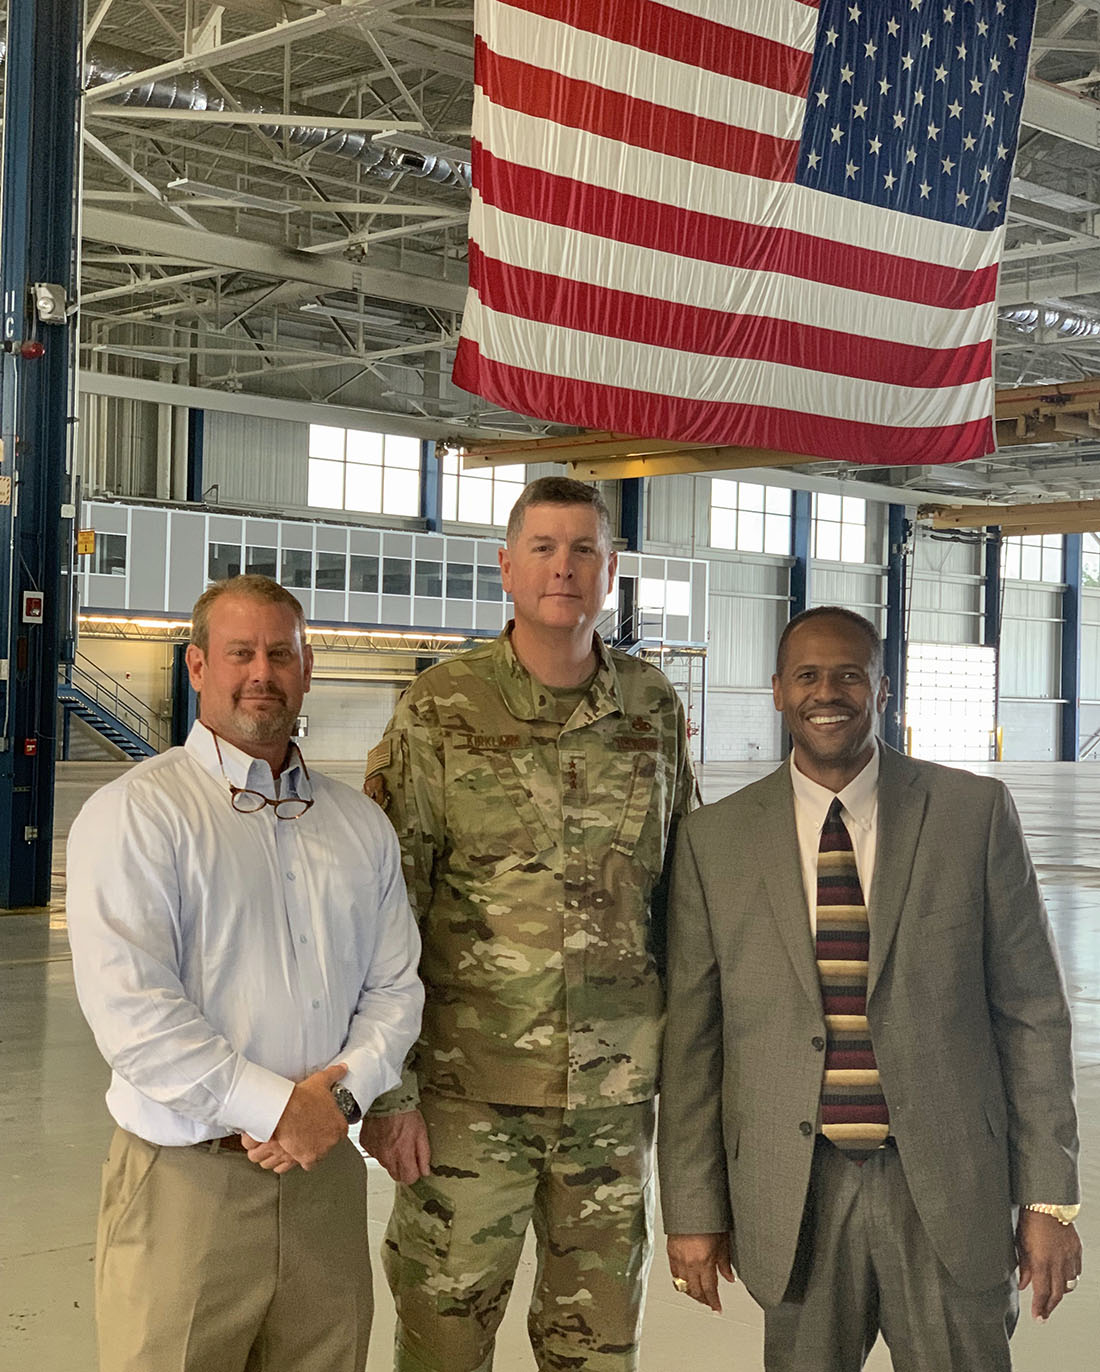 """(Pictured left to right) Robbie Fountain, chairman of the Macon-Bibb County Industrial Authority, Lt. Gen. Donald E. """"Gene"""" Kirkland, Commander, Air Force Sustainment Center (AFSC), Air Force Materiel Command, and Dr. Ivan H. Allen, president of Central Georgia Technical College."""